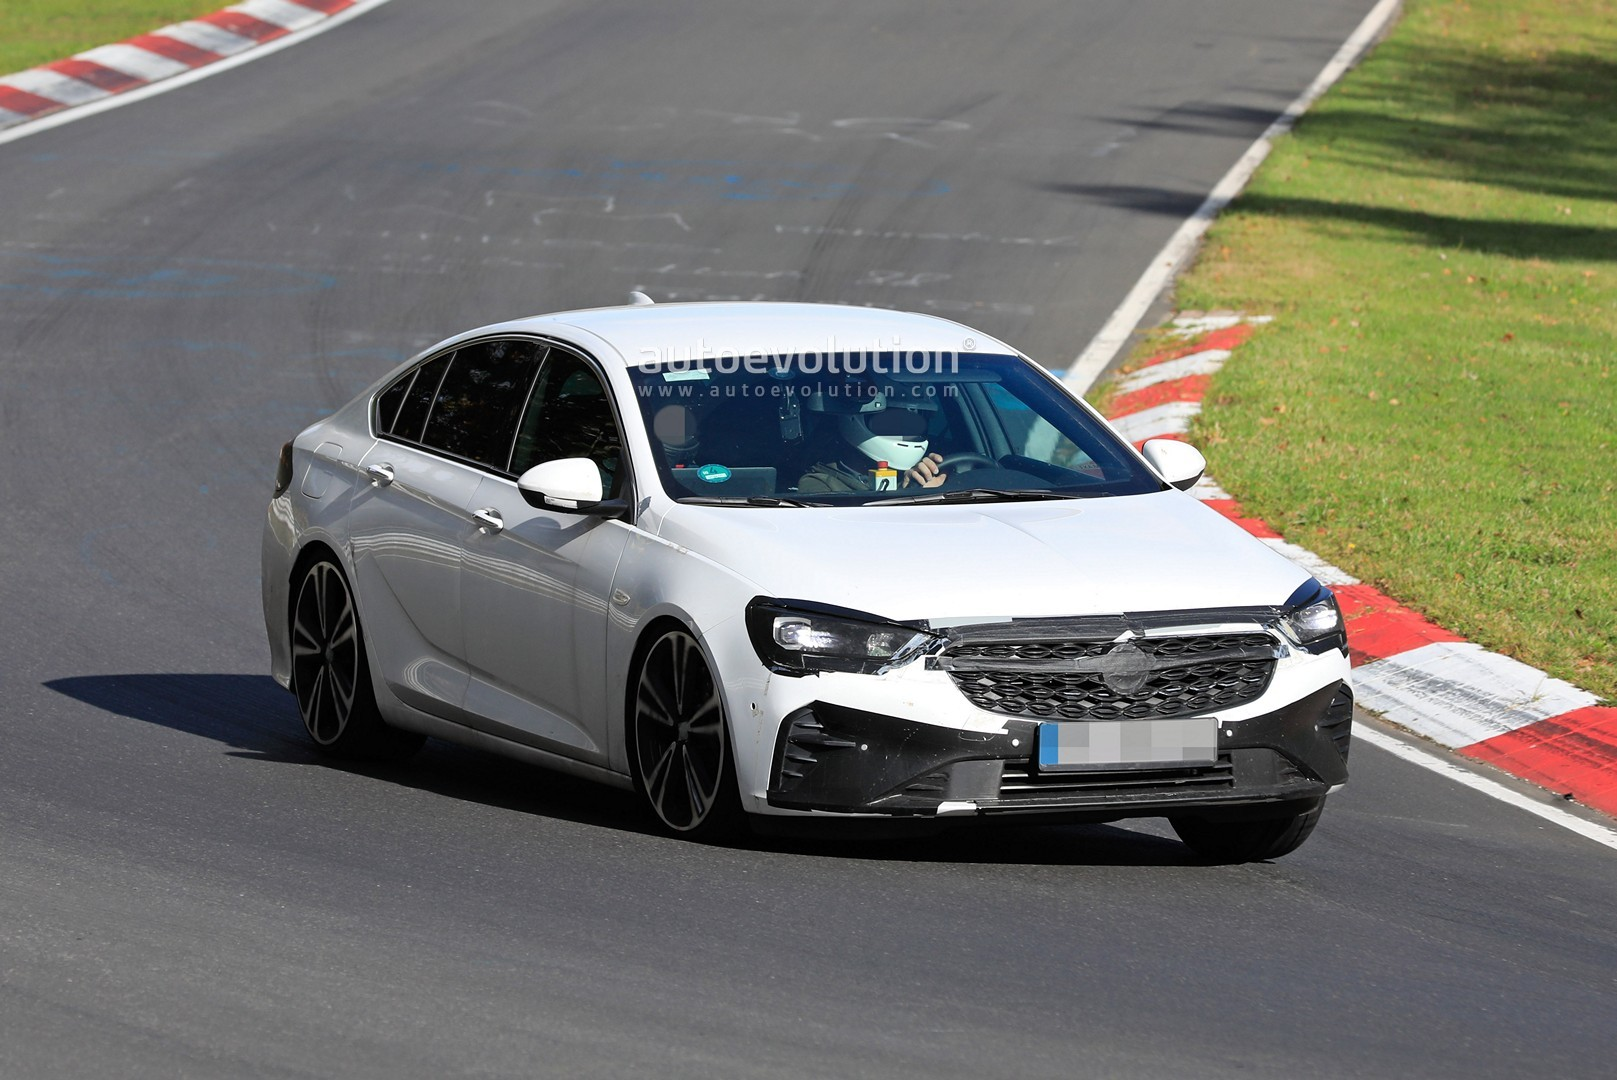 2020 Opel Insignia Spied at the Nurburgring, Looks a Bit ...